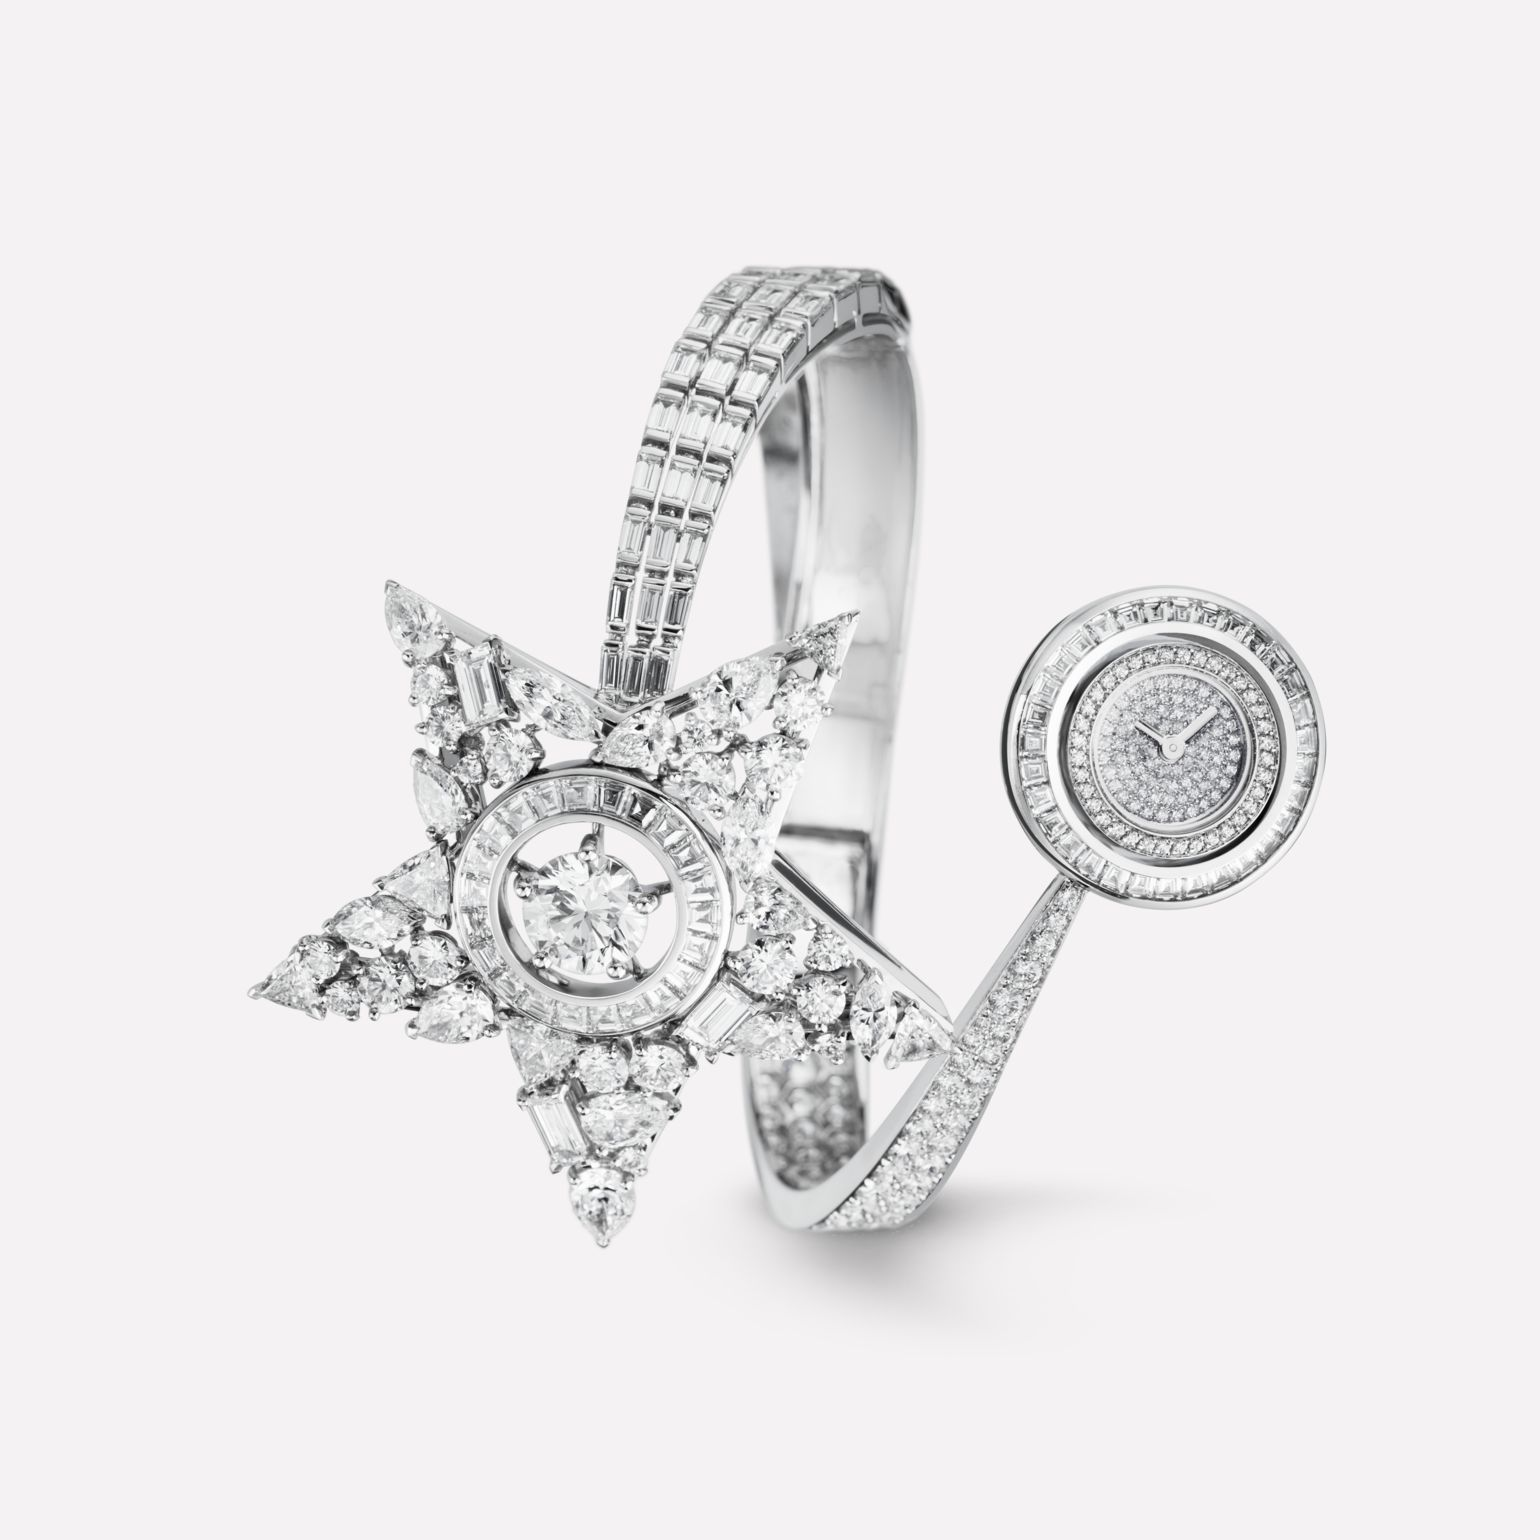 Comète Jewelry Watch Shooting star motif in 18K white gold with diamonds, and center stone